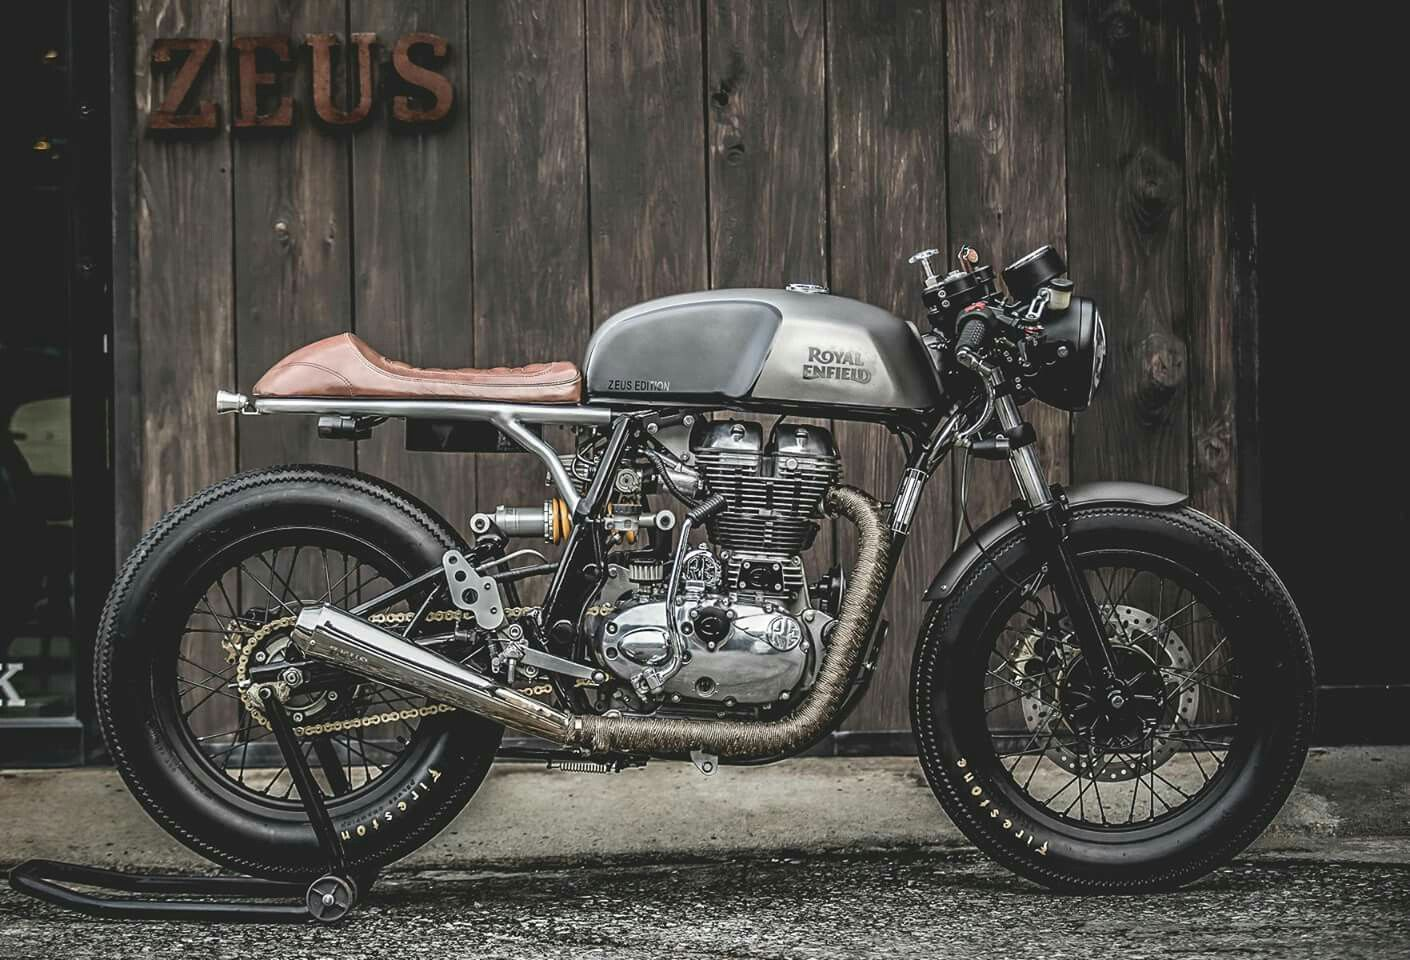 caferacers #caferacer #inspiration #bikergear #motorcycles